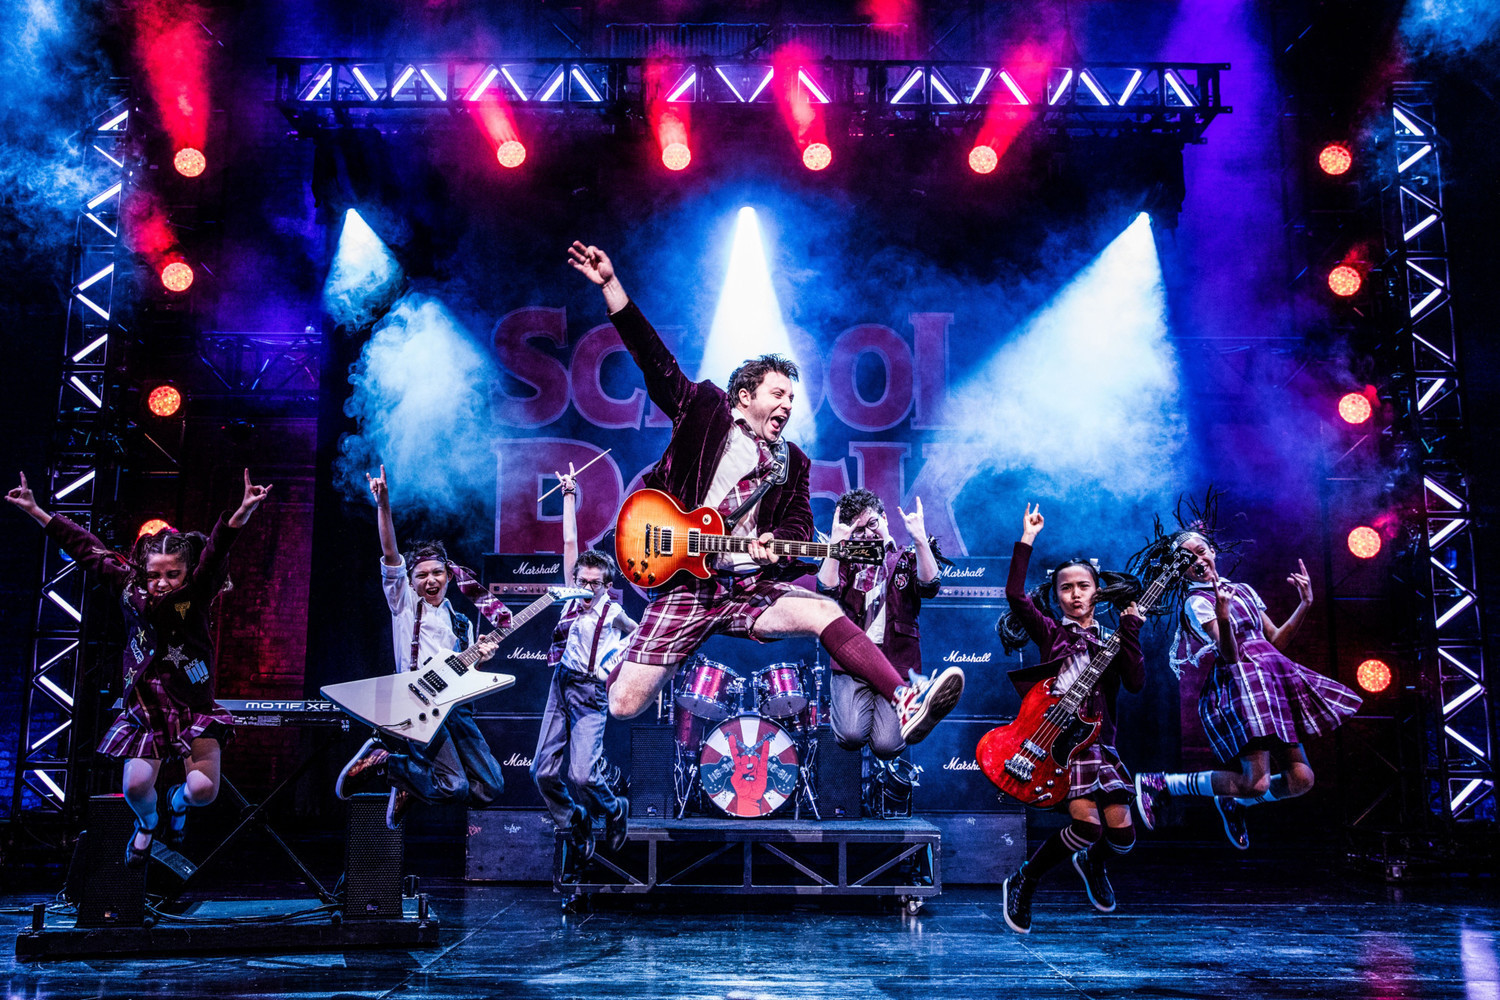 BWW Review: SCHOOL OF ROCK at Times Union Performing Arts Center